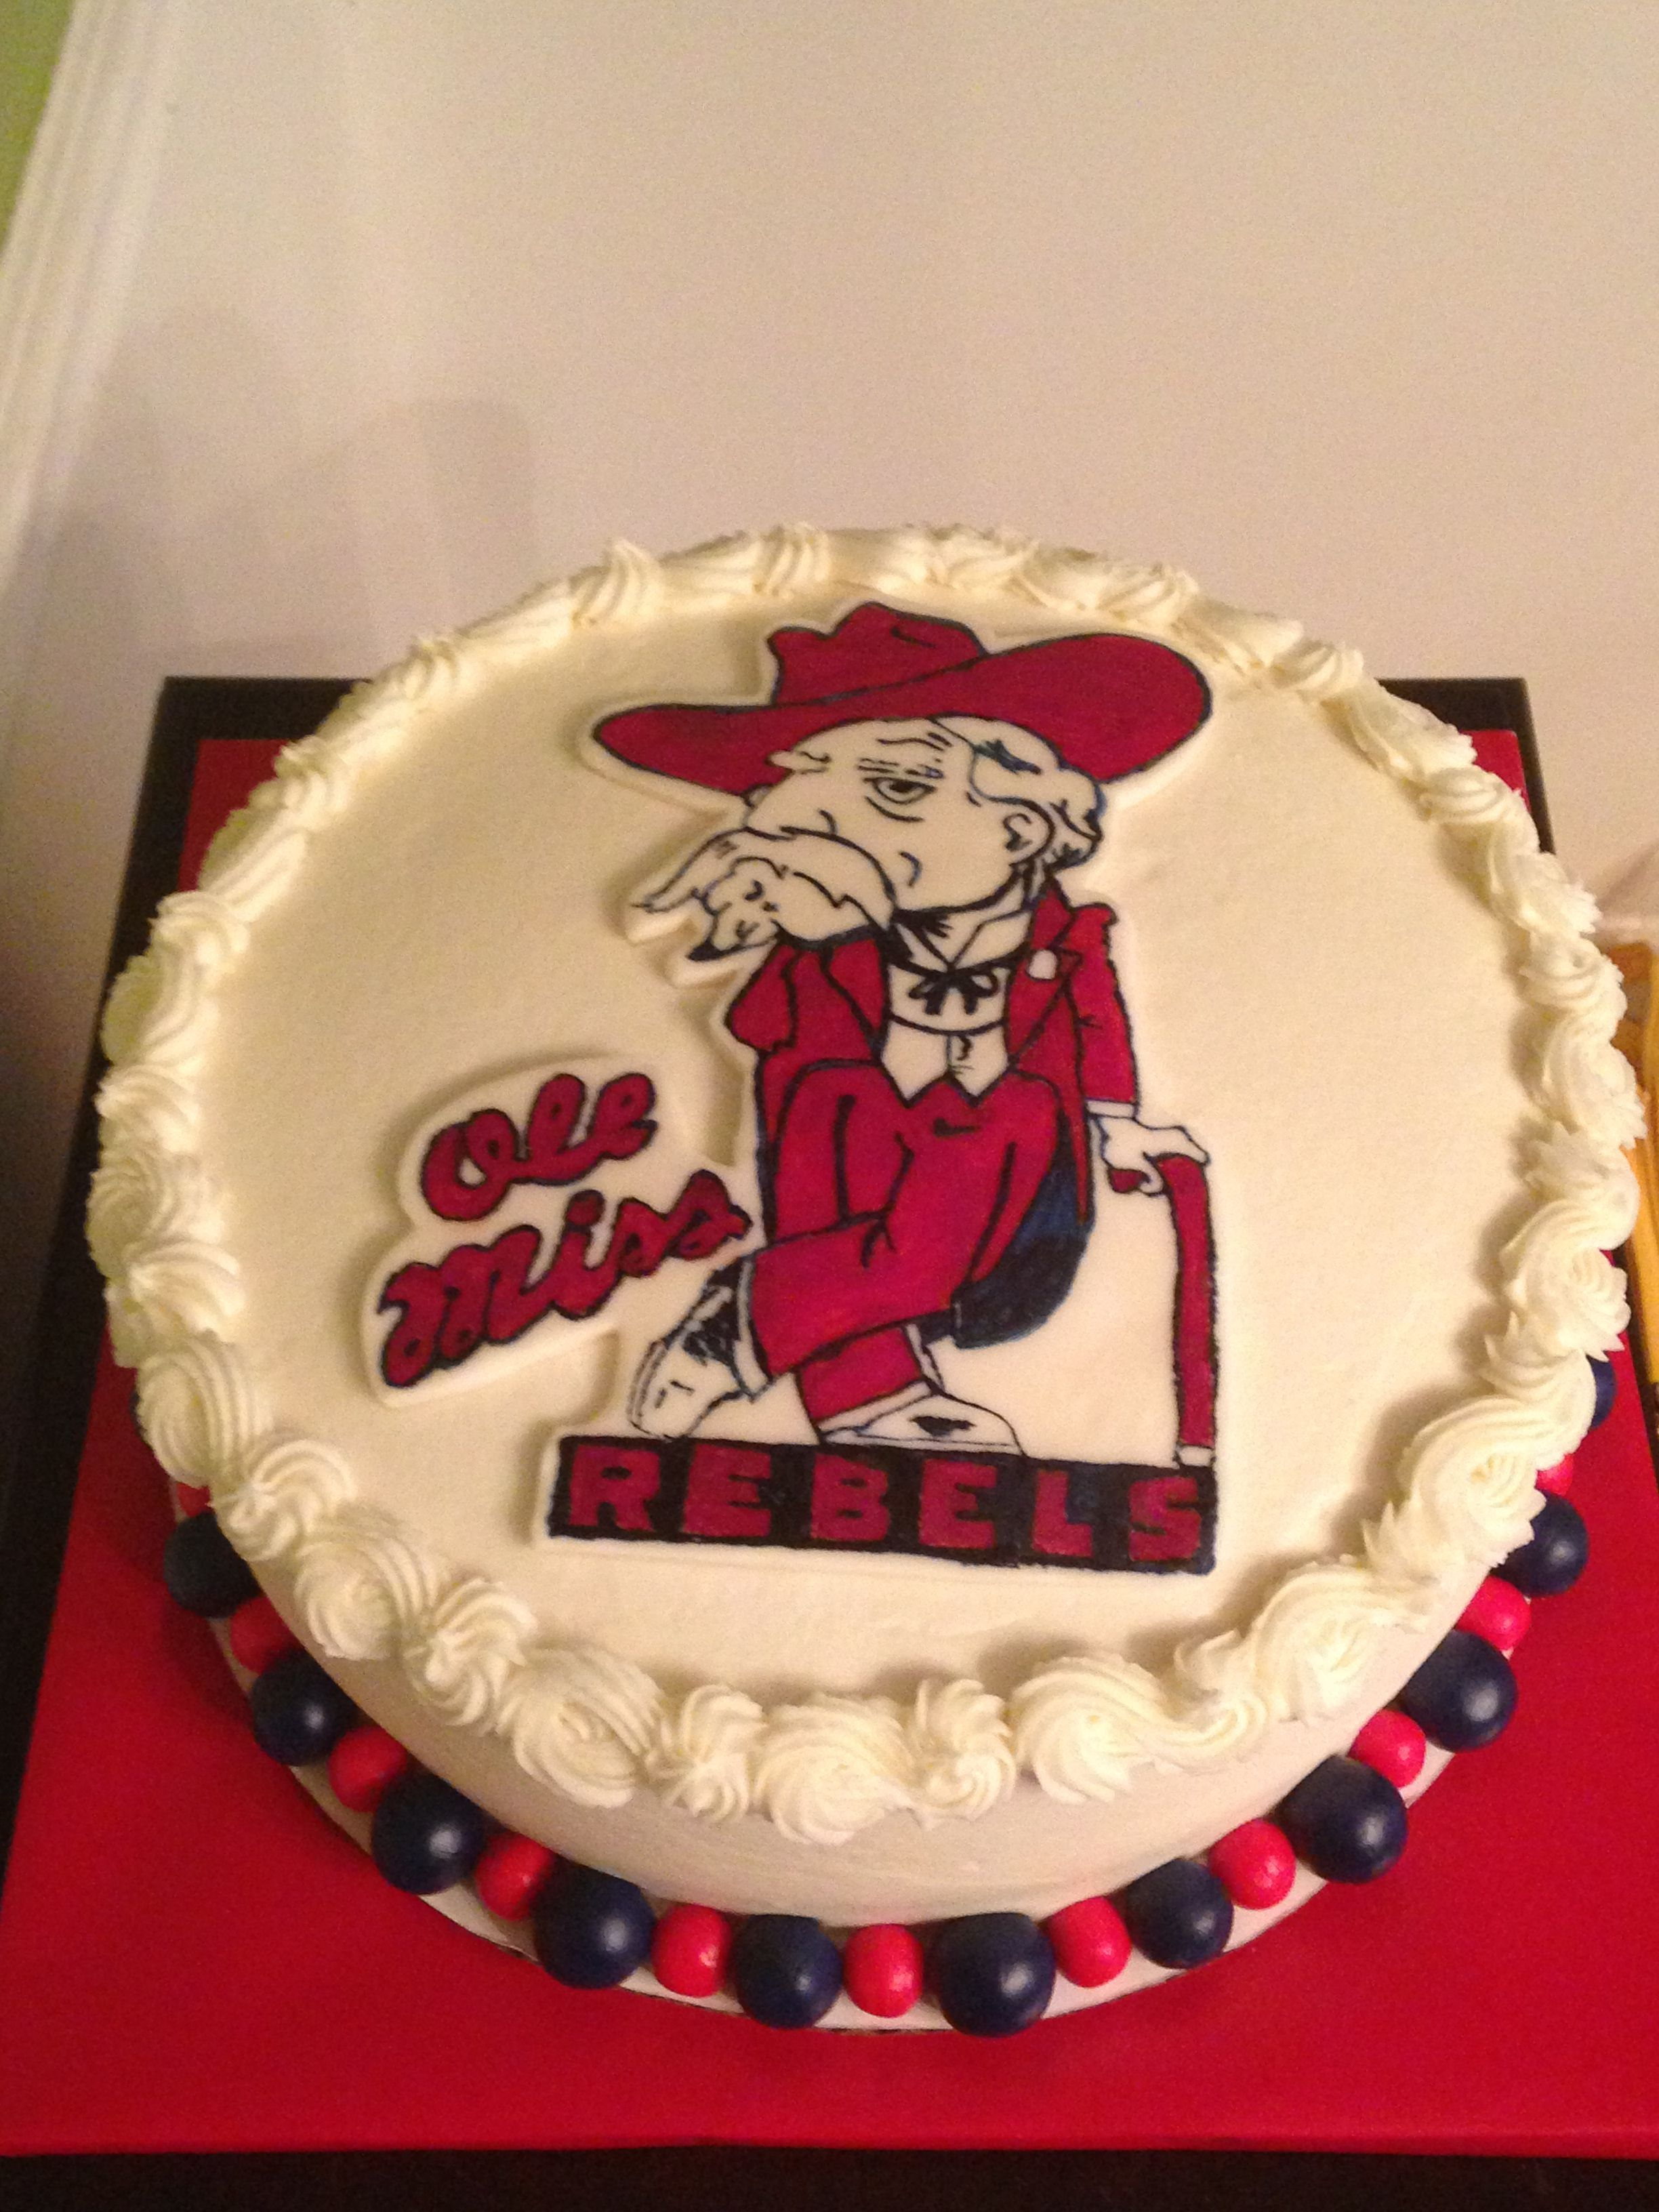 Pleasing Ole Miss Rebels Cake Created By Twisted Sister Cakes Funny Birthday Cards Online Fluifree Goldxyz